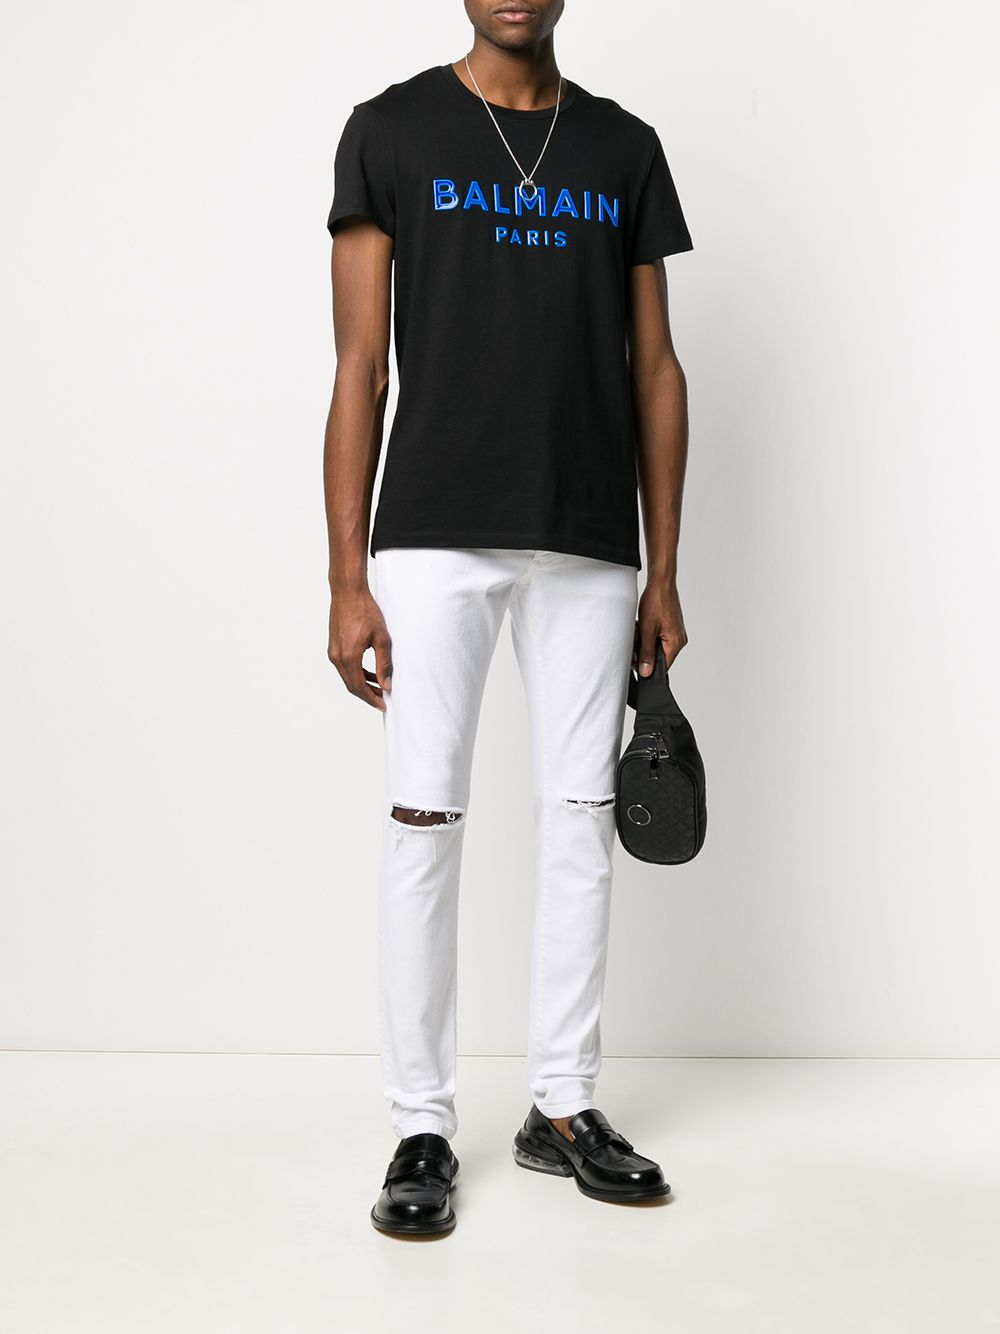 BALMAIN gel logo t-shirt black/blue